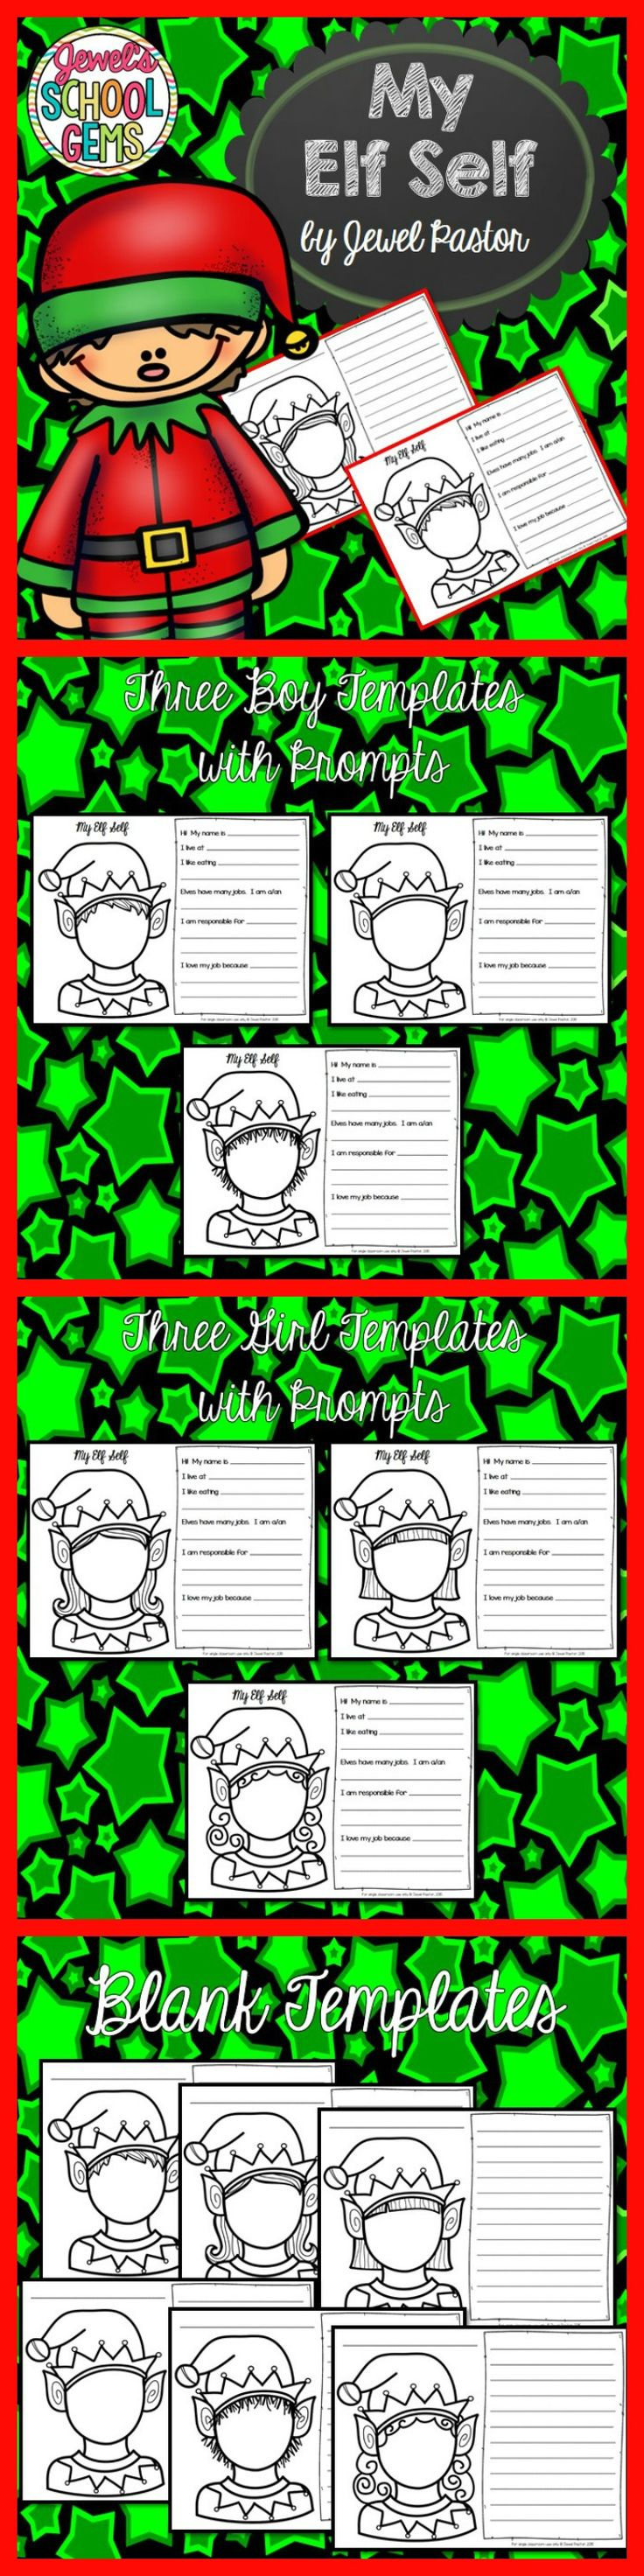 CHRISTMAS WRITING: MY ELF SELF  Have your students enjoy creative writing during the Christmas season with My Elf Self sheets.  This packet comes with six blackline templates -- three boy templates and three girl templates. Each sheet contains a blank elf boy/girl face that your students can draw their own faces on depending on their own or desired hairstyle. Each sheet also has incomplete sentences that students can fill in to write their ideas about what an elf's life is like.